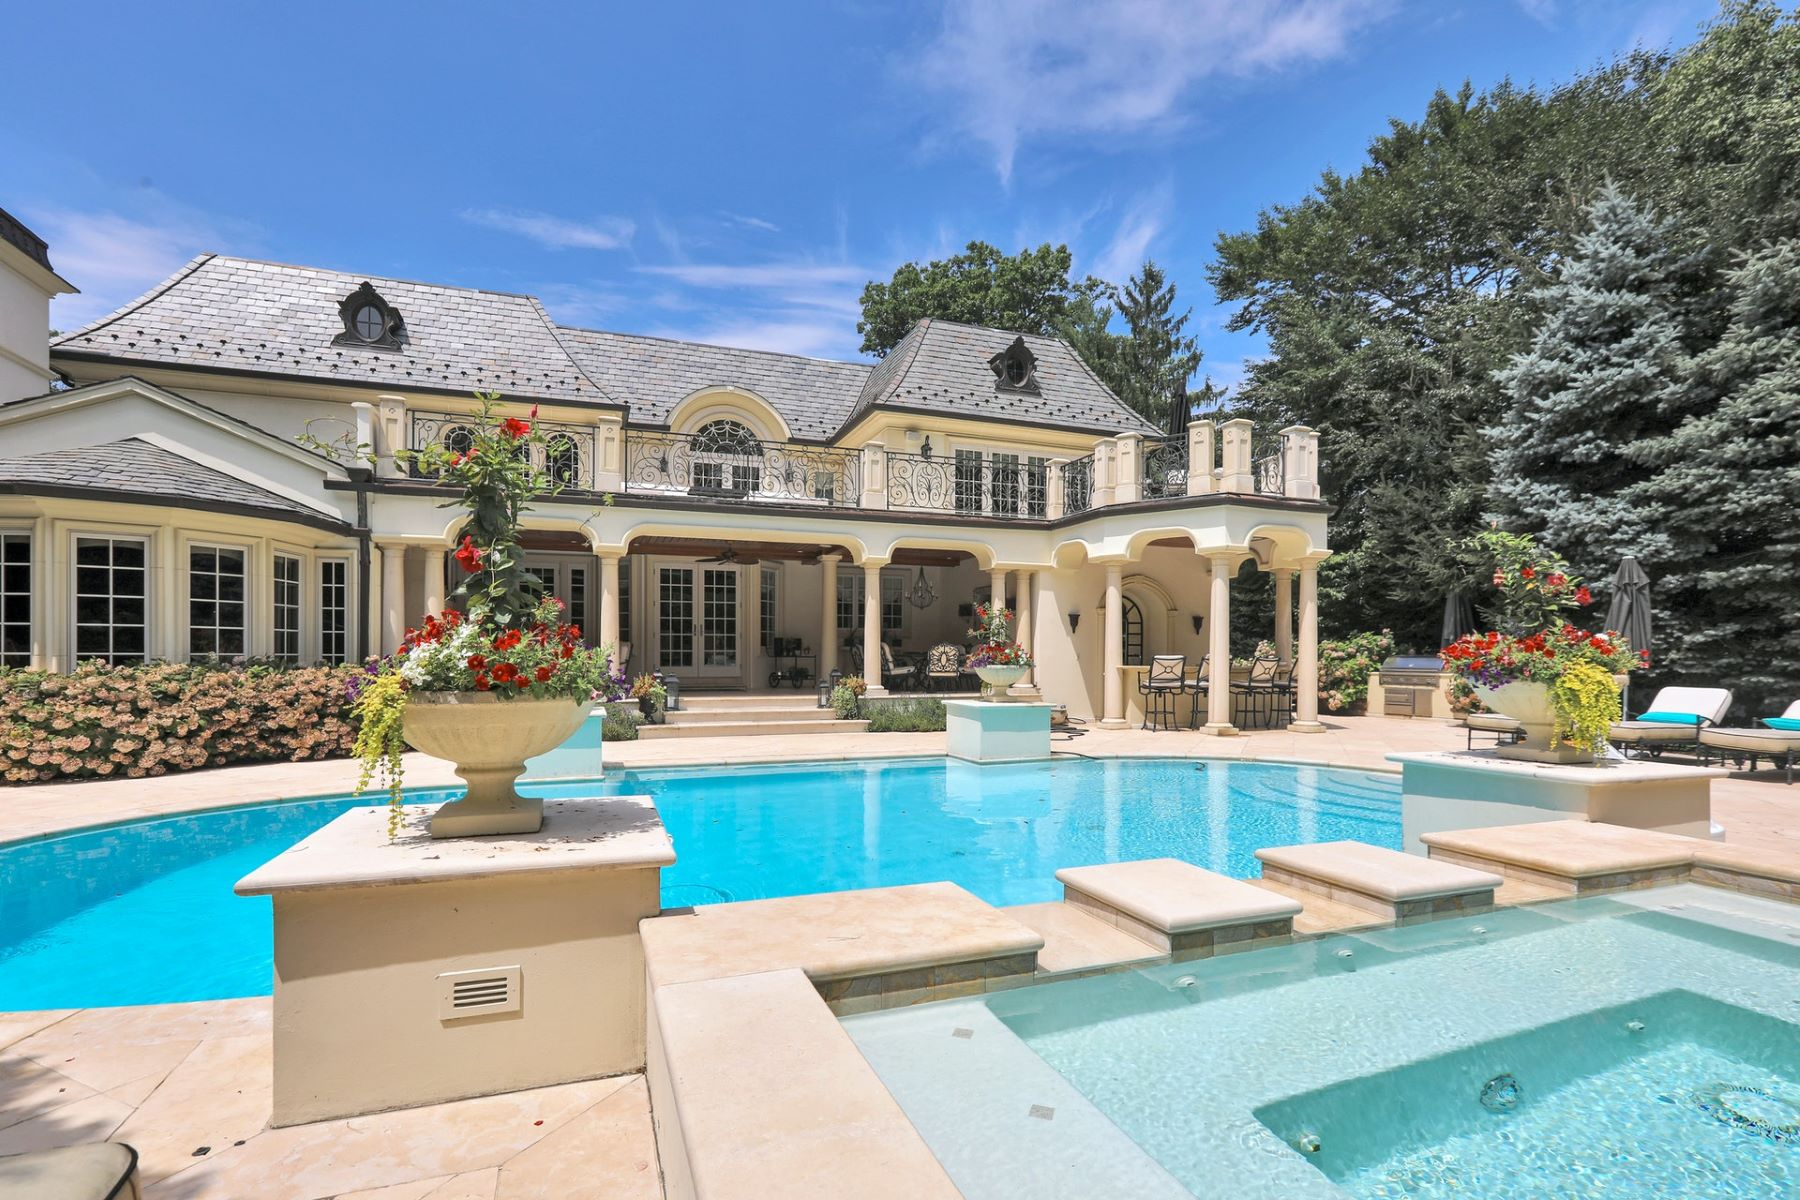 Single Family Homes for Active at Luxury and Sophistication 186 Hoover Dr Cresskill, New Jersey 07626 United States